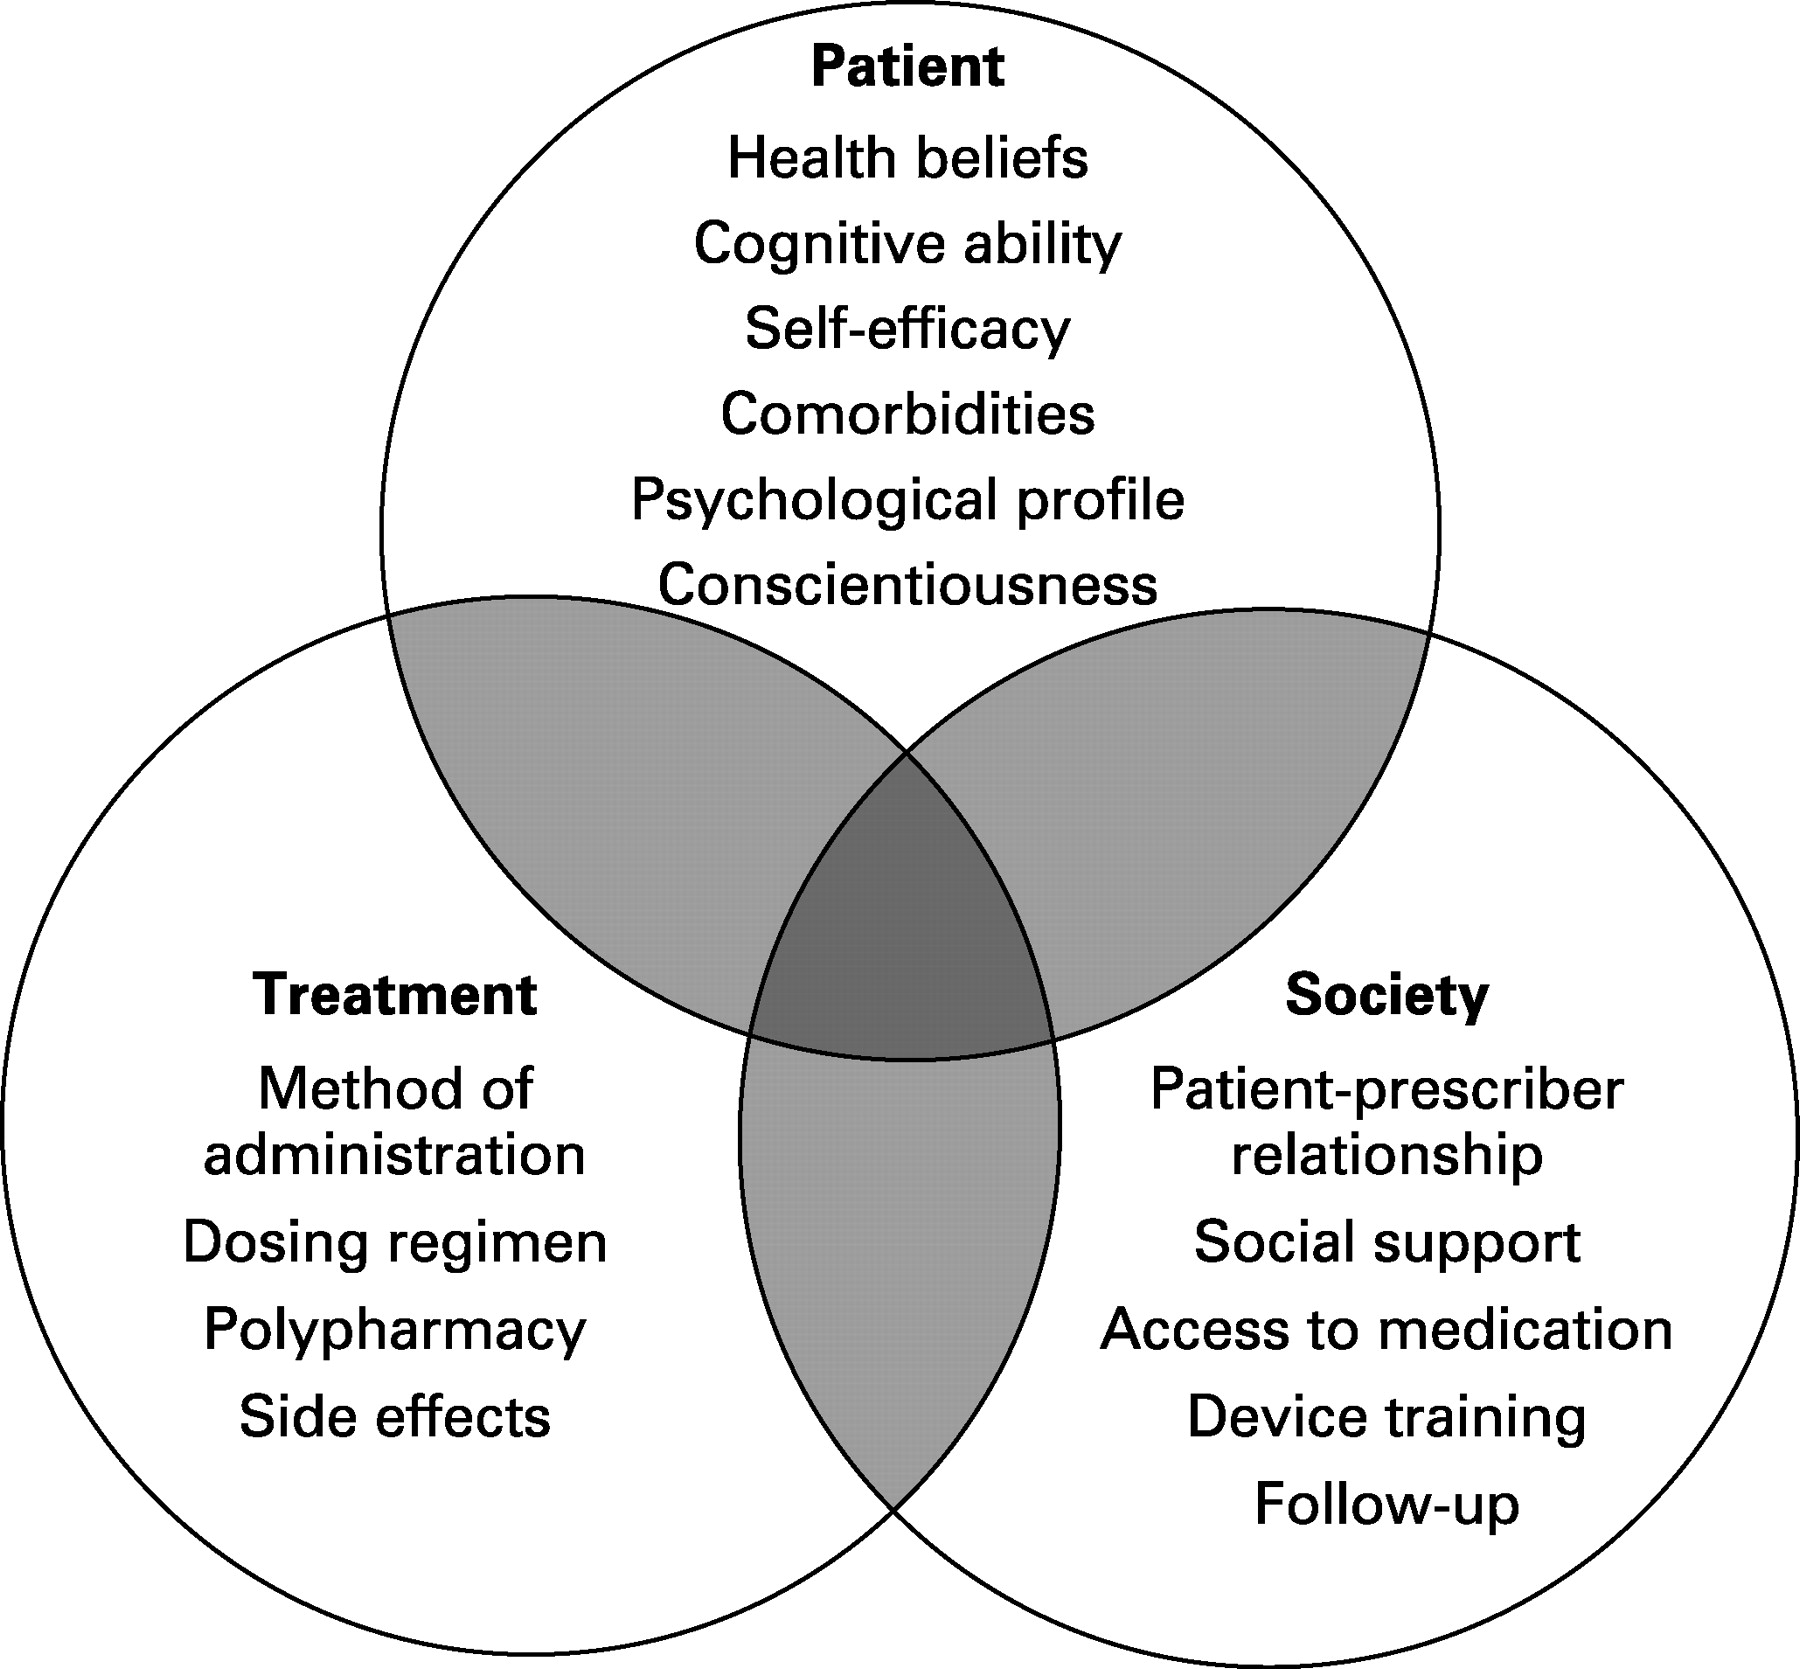 physician patient relationship and medication compliance definition